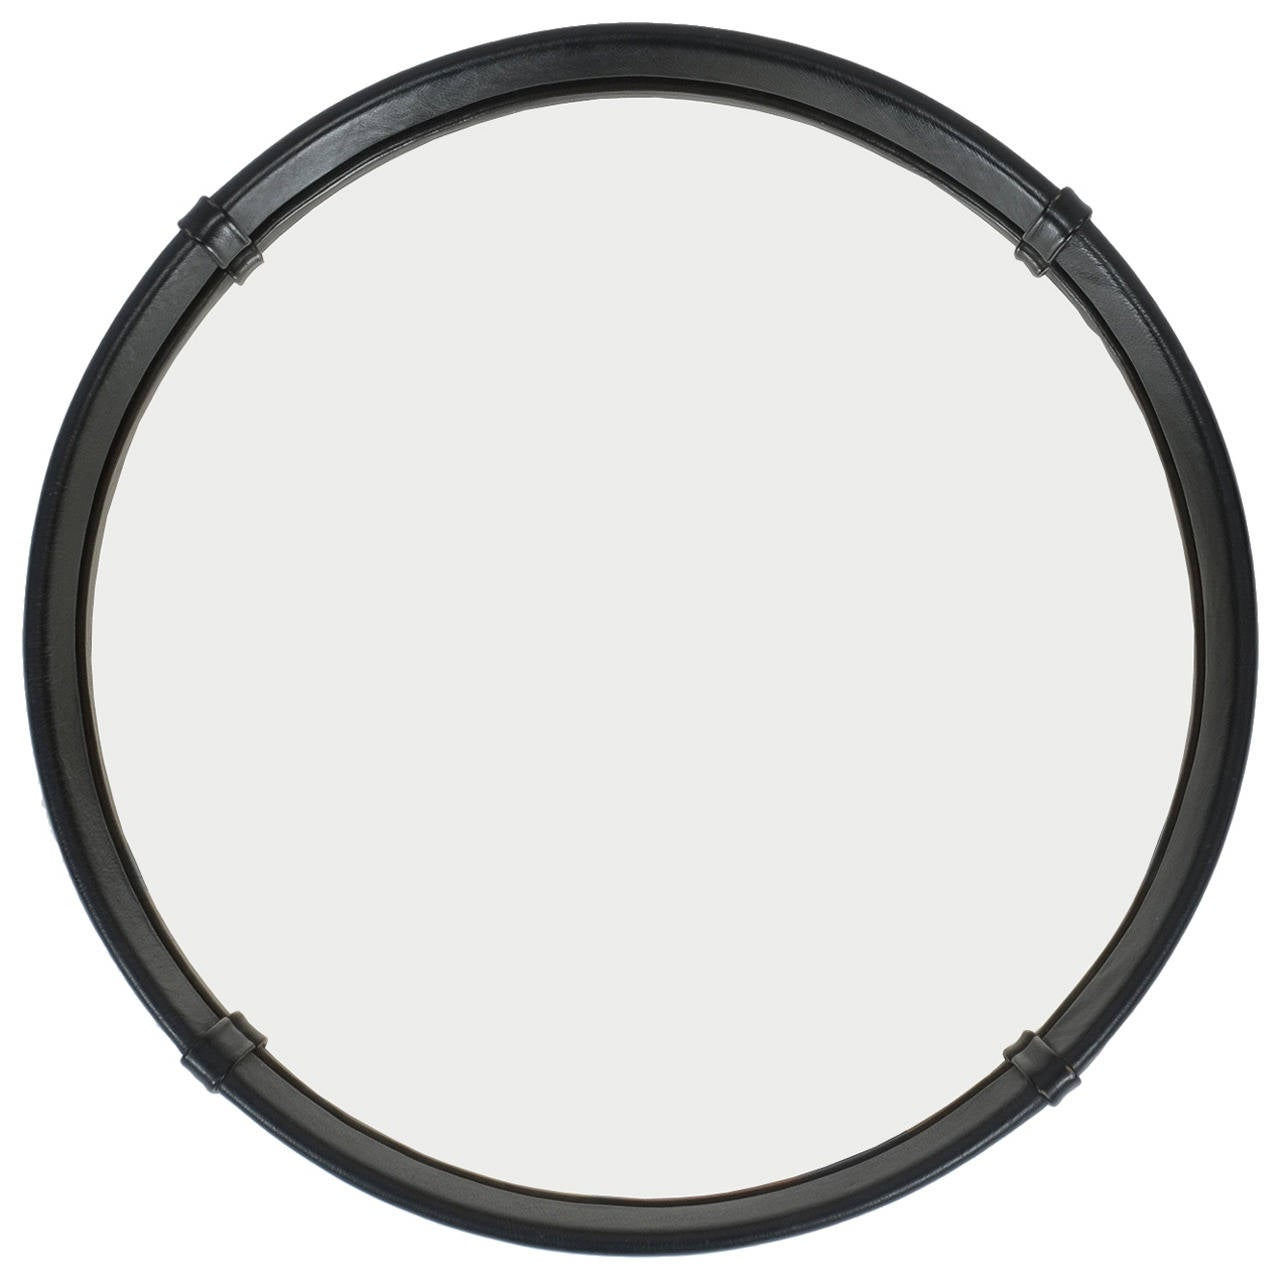 Circular Leather Wrapped Mirror by Pace